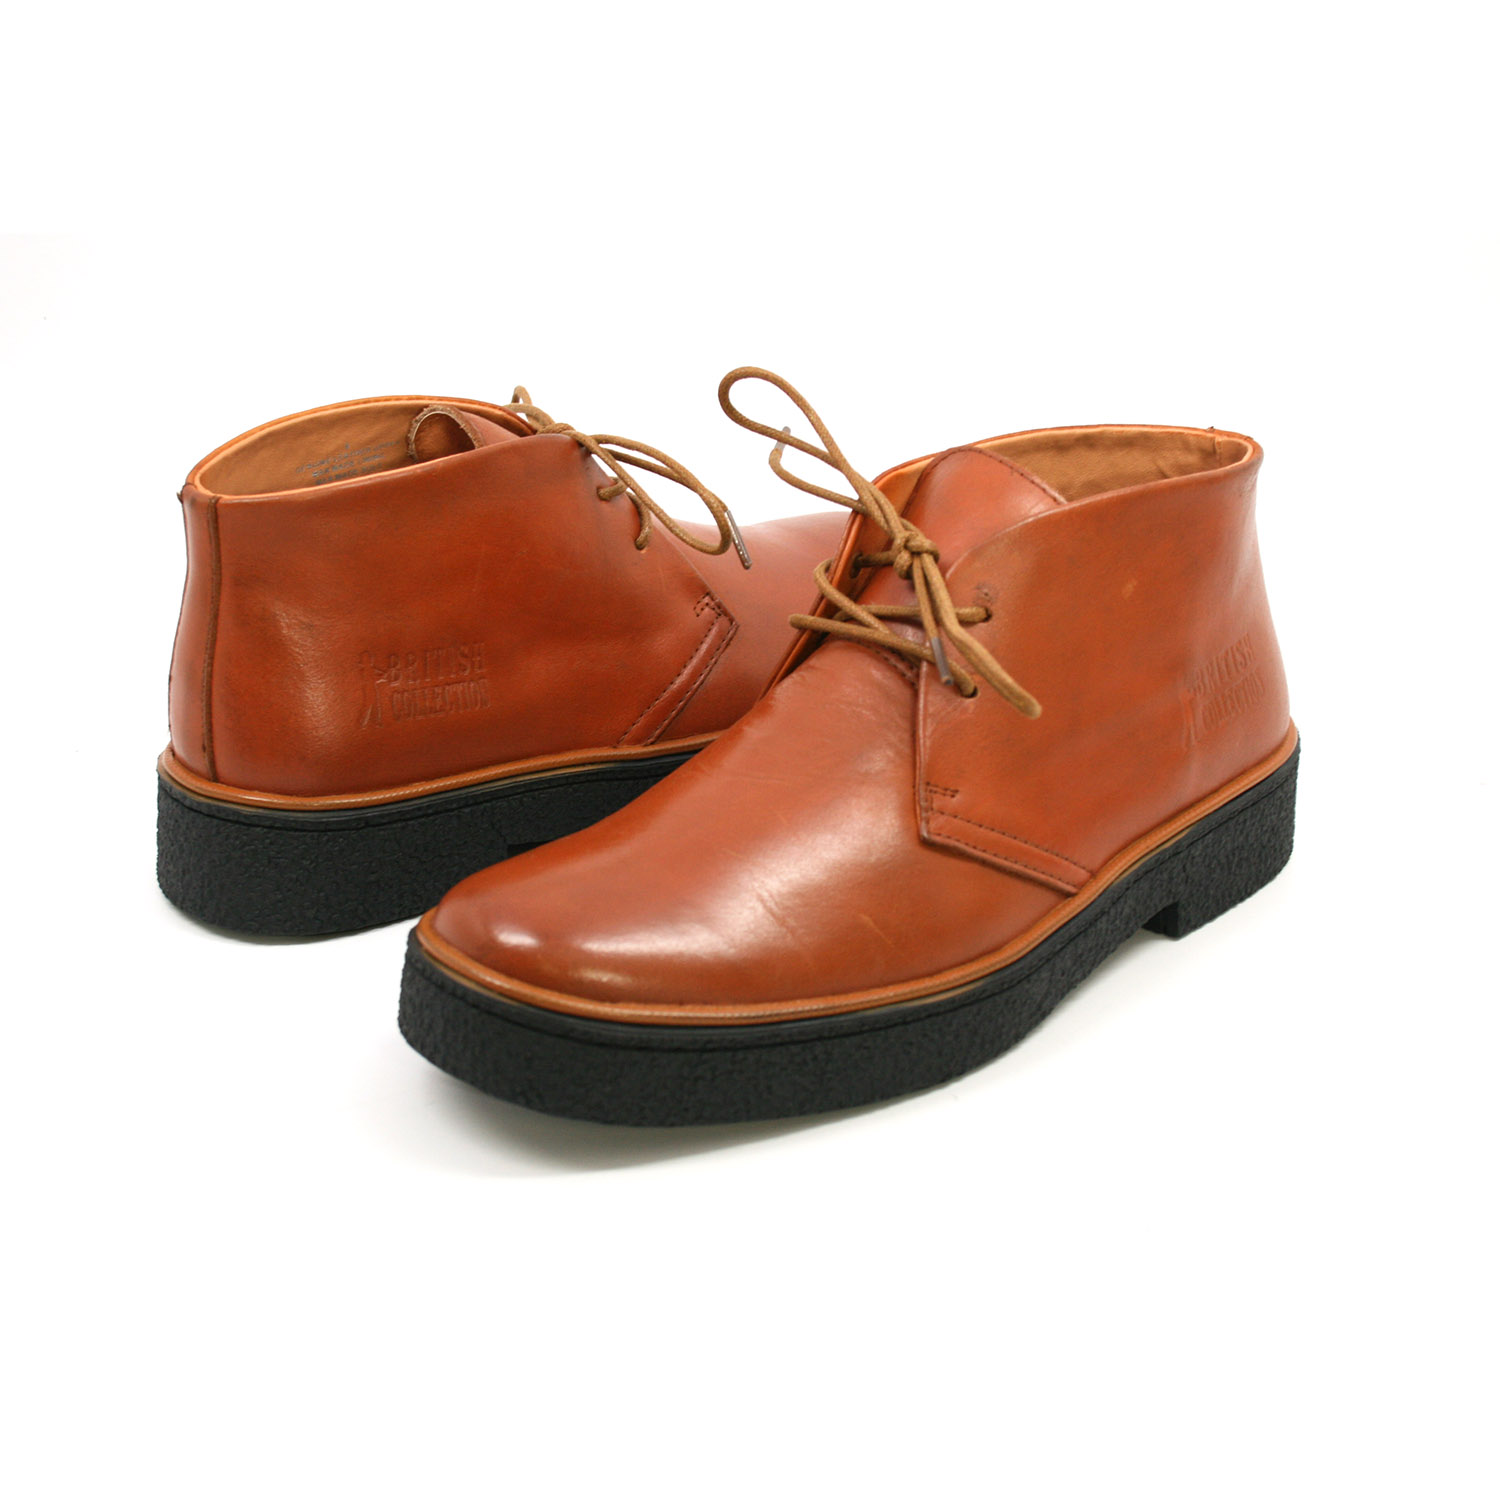 British Collection Men's Playboy Chukka Boot Rust Leather [1226-56 ...